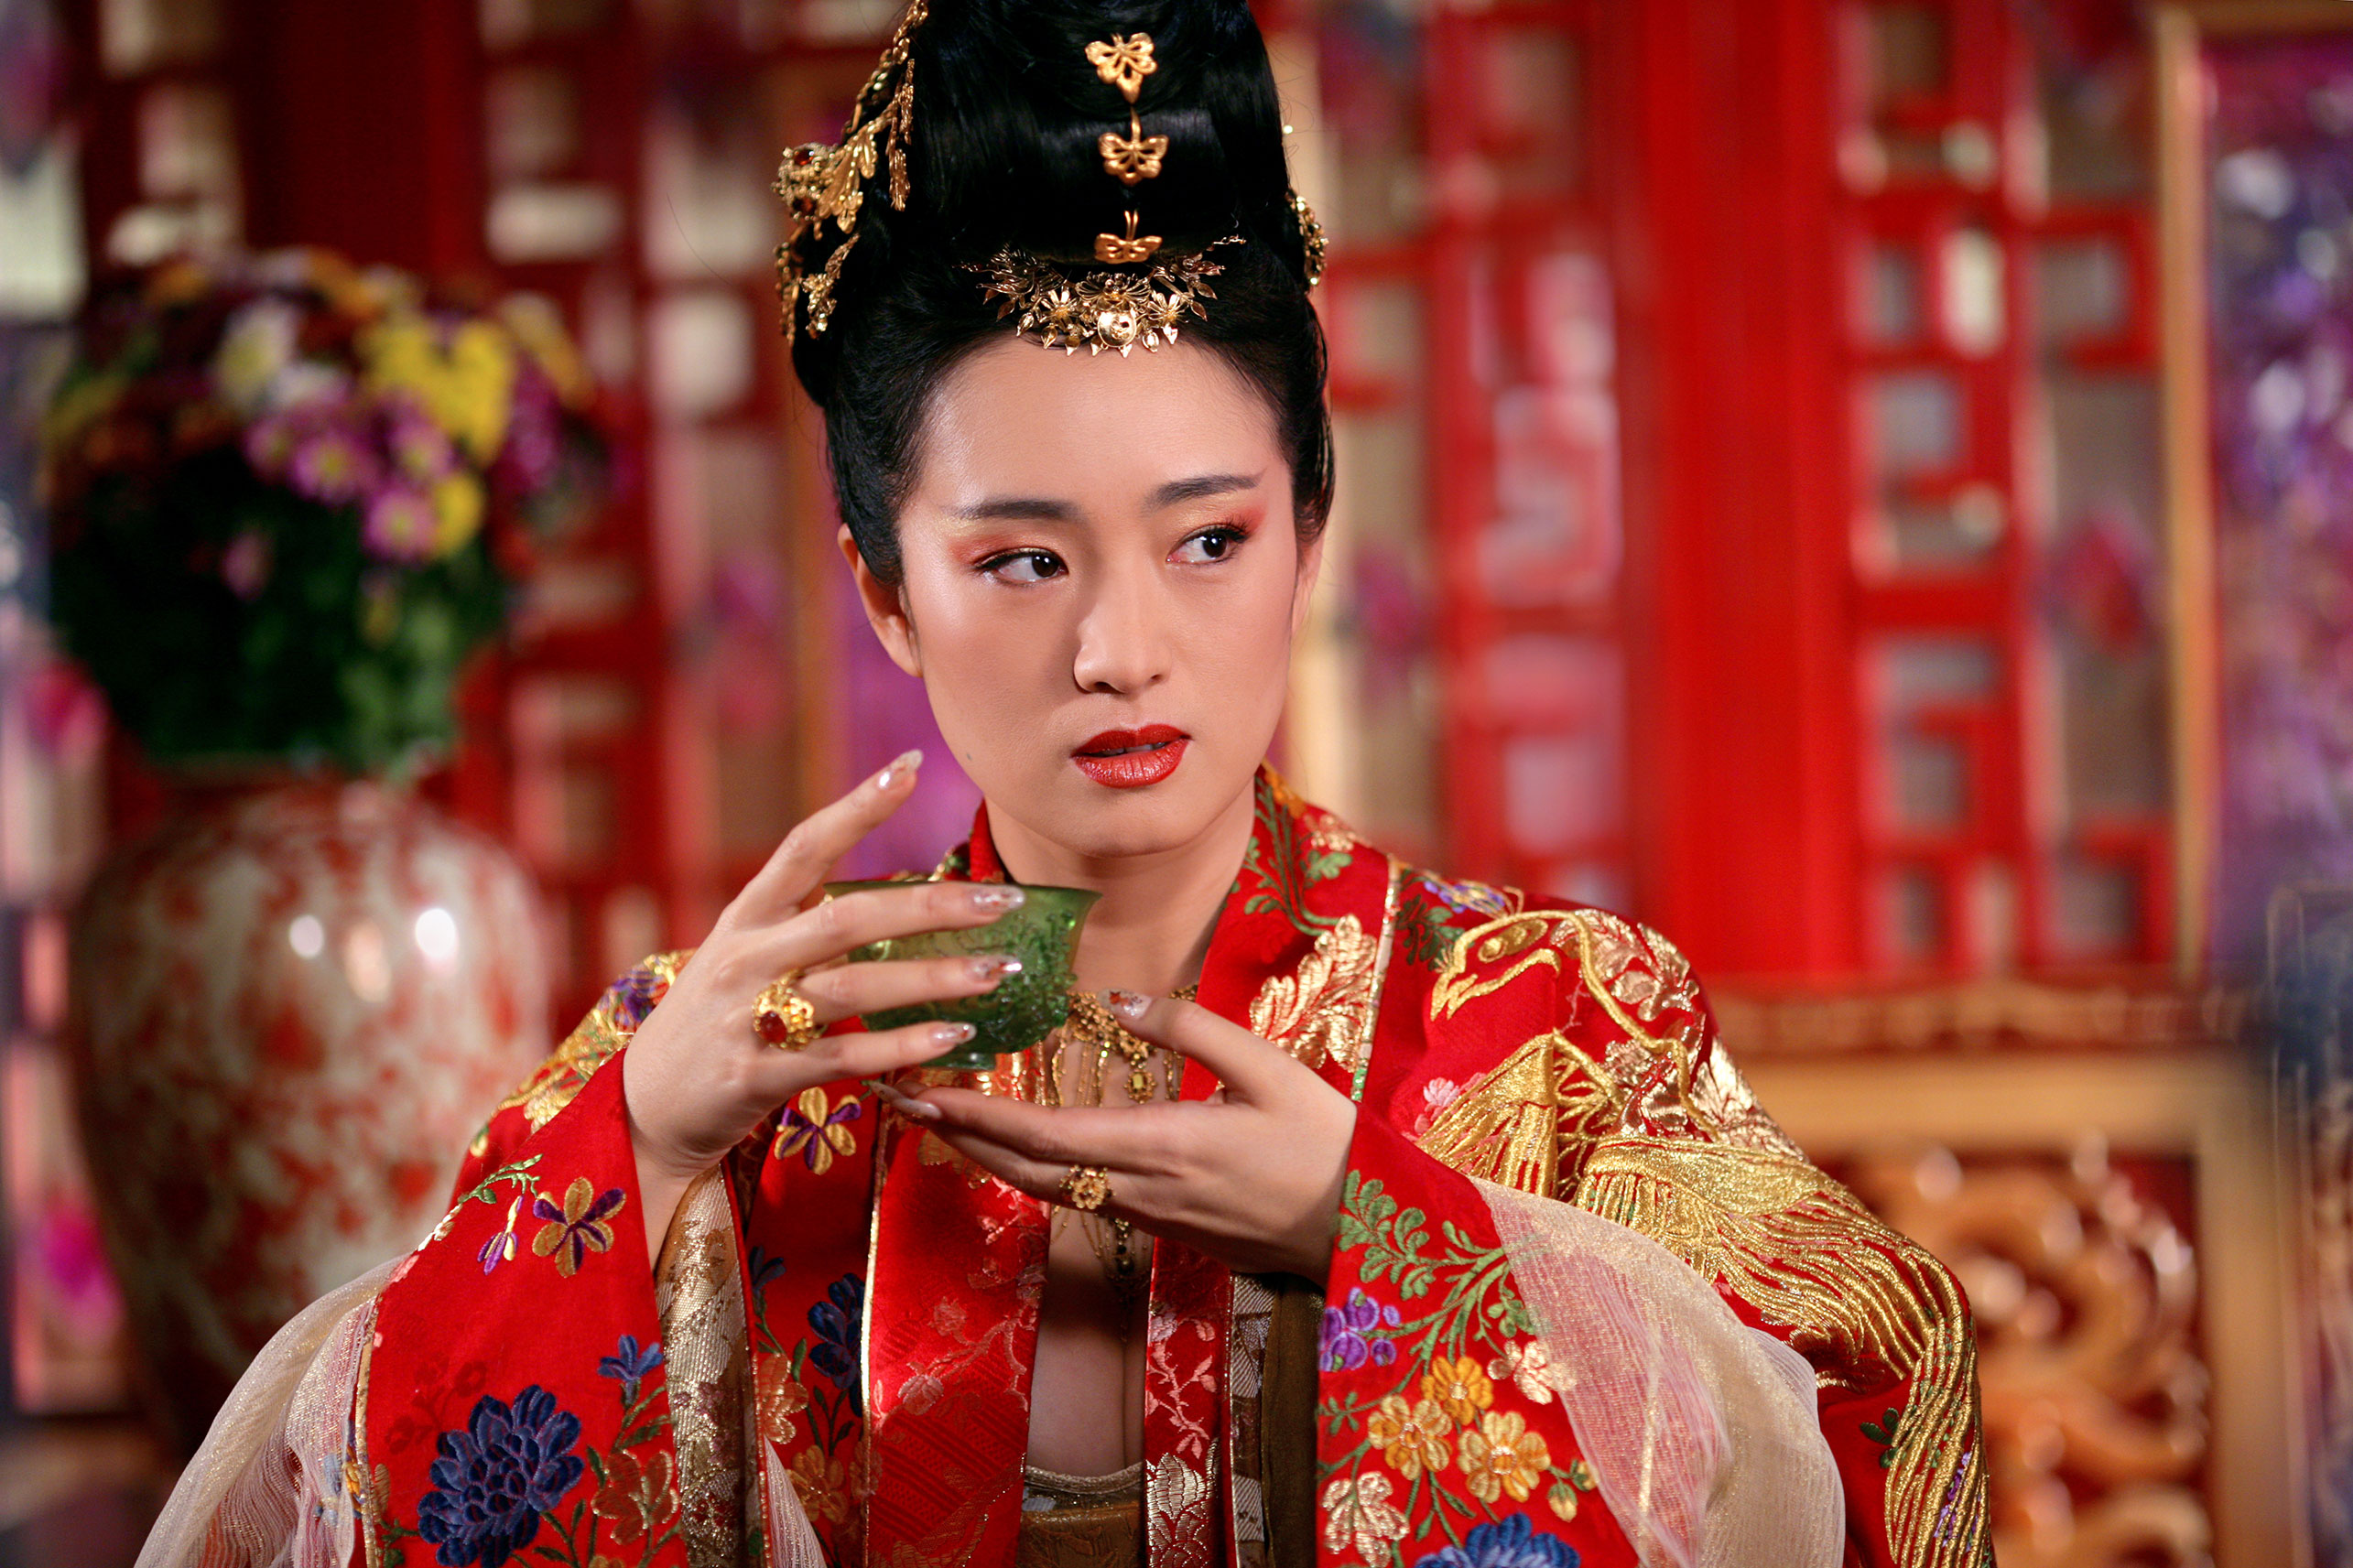 Gong Li as the Empress in Curse of the Golden Flower